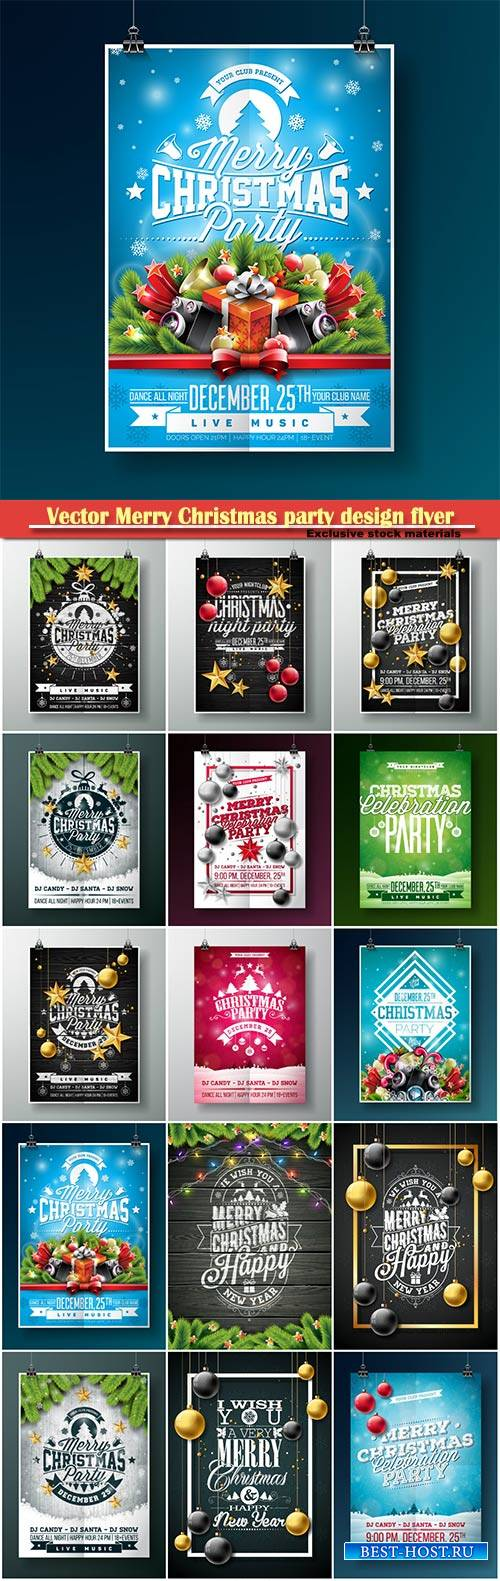 Vector Merry Christmas party design flyer with holiday elements